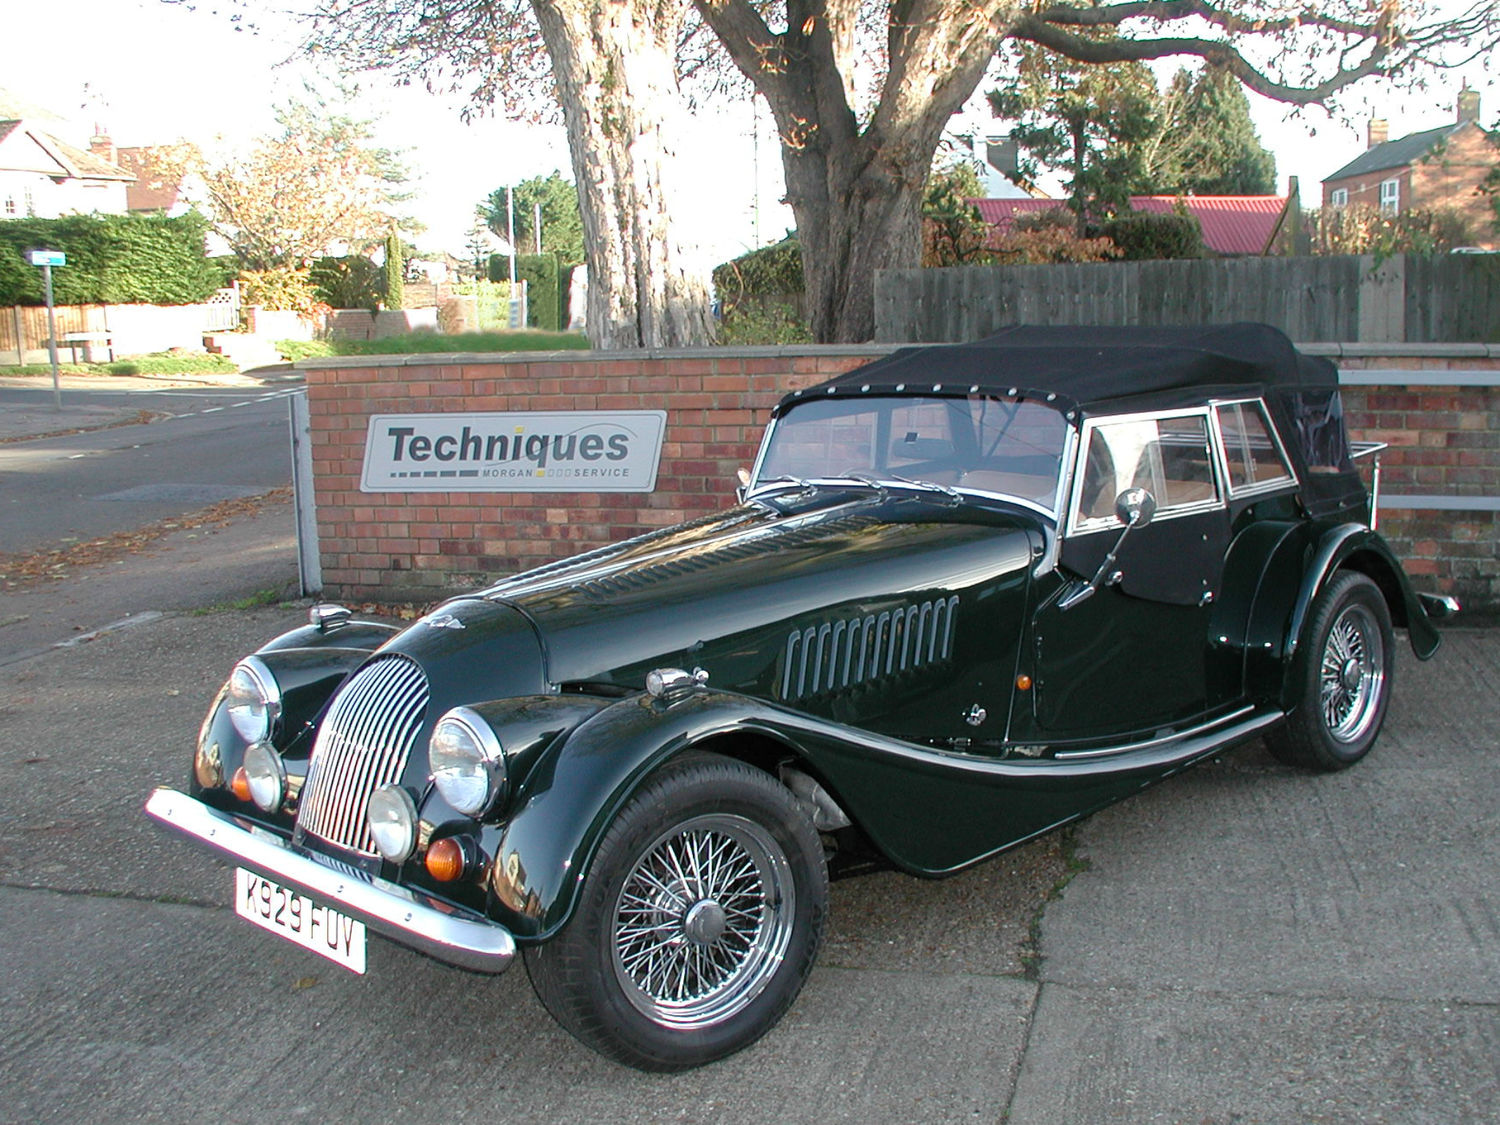 SOLD - 1993 Morgan +4 T16 4 Seater